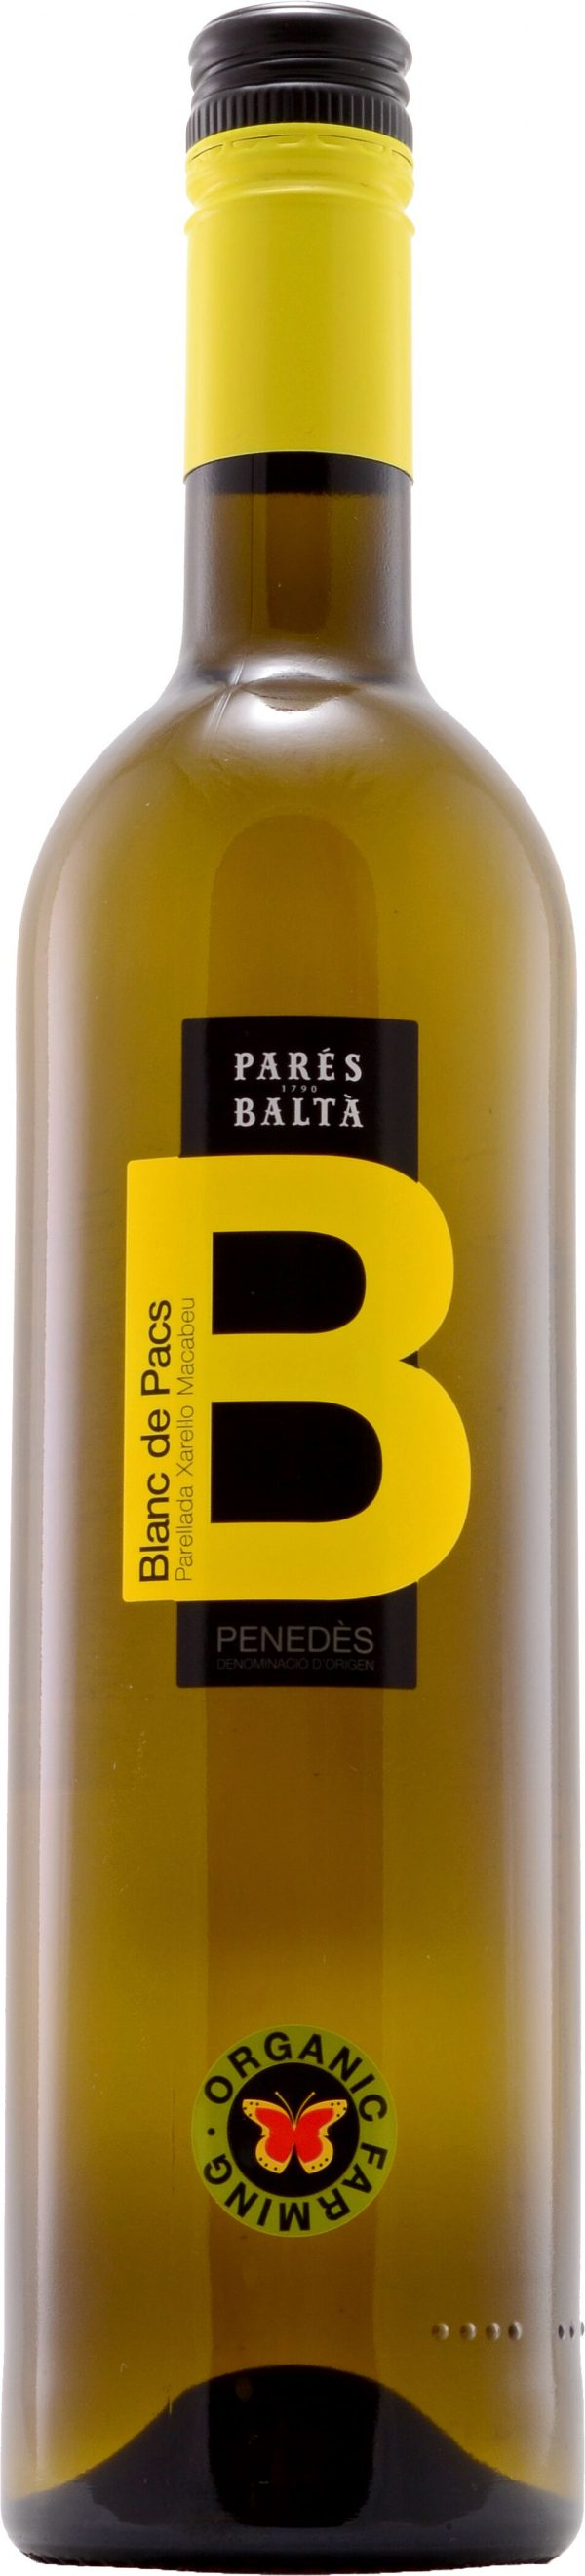 Pares Balta Blanc de Pacs 75cl